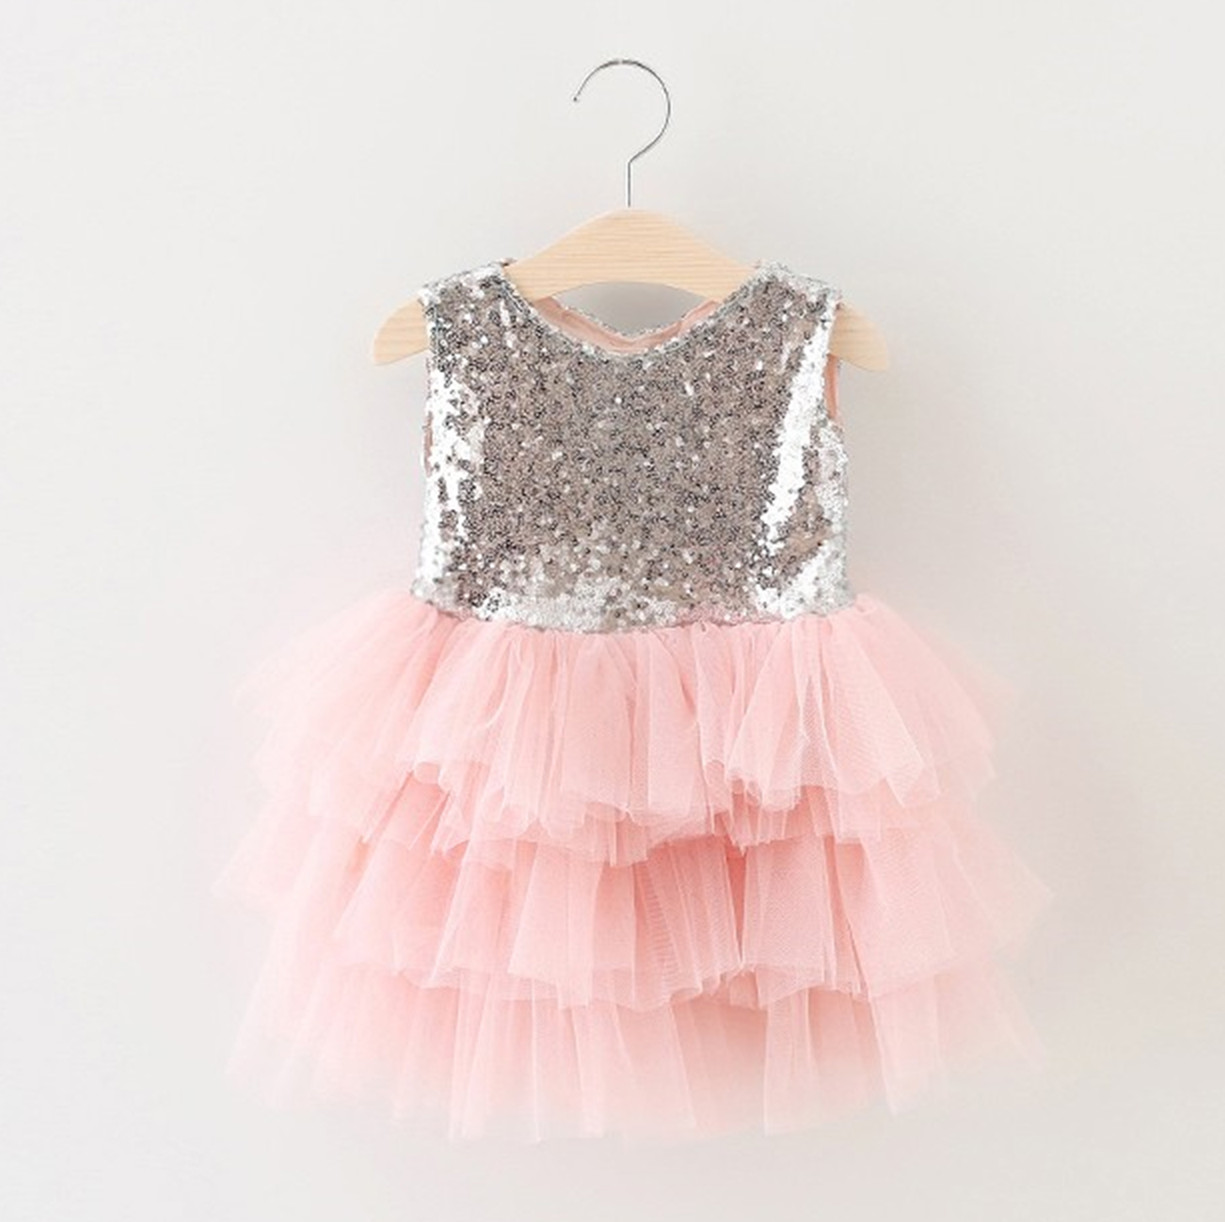 0-7Y Kids Gold Sequined Princess Dress Patchwork Layered Mesh Two Bow Girls Dresses For Wedding And Party 2017 Children Clothes<br><br>Aliexpress